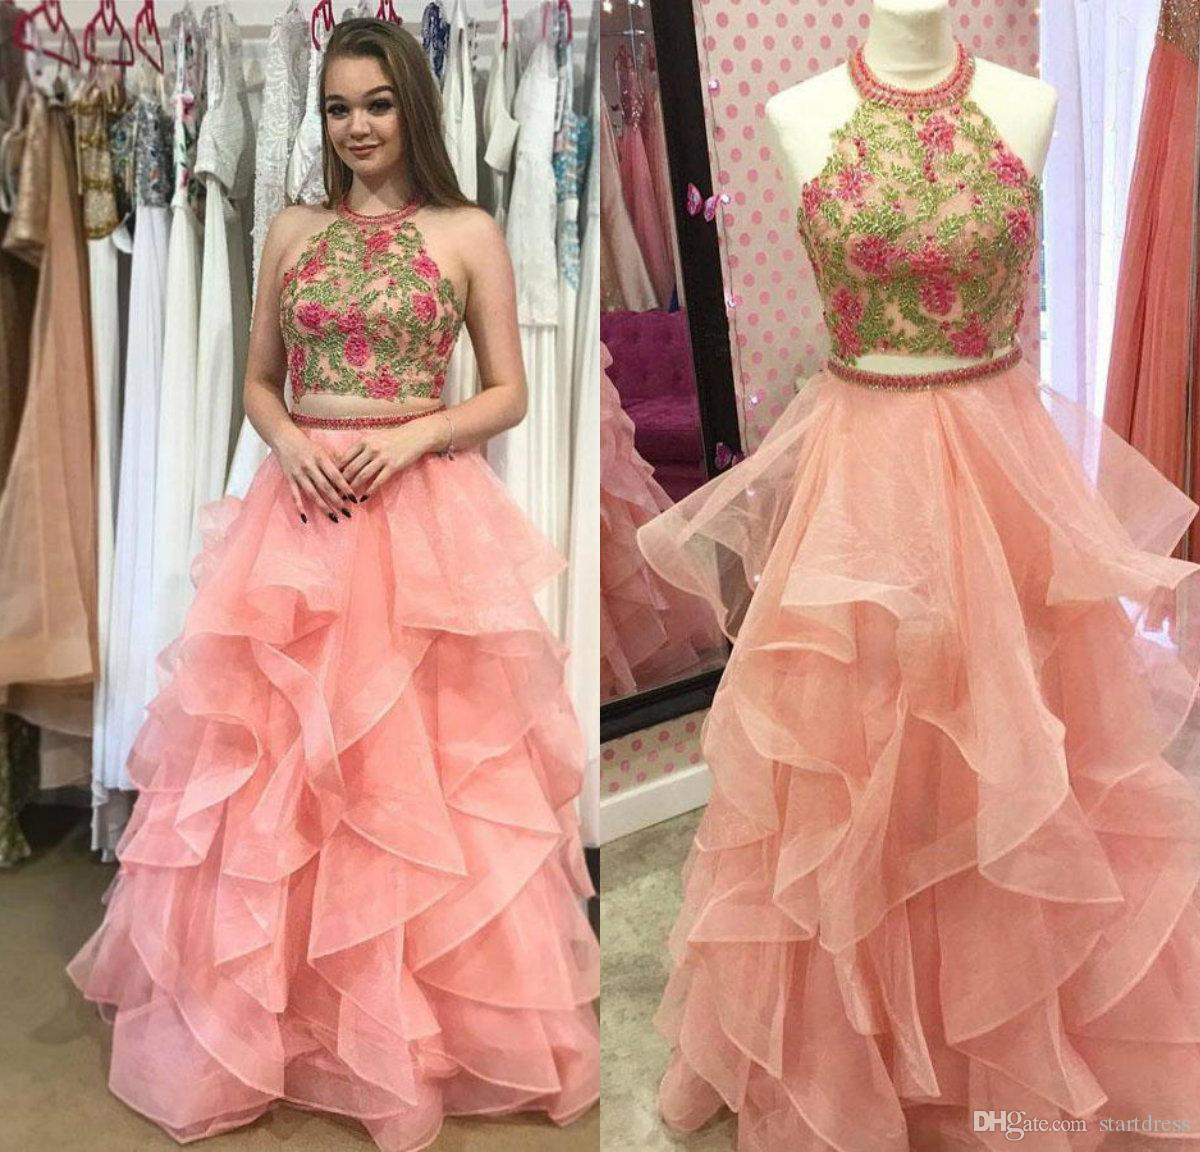 Custom Coral Halter Top Beaded 2 Piece Prom Dresses Floor Length Organza Best Ruffles Evening Gowns Sexy Backless 2018 african Party Sepcial